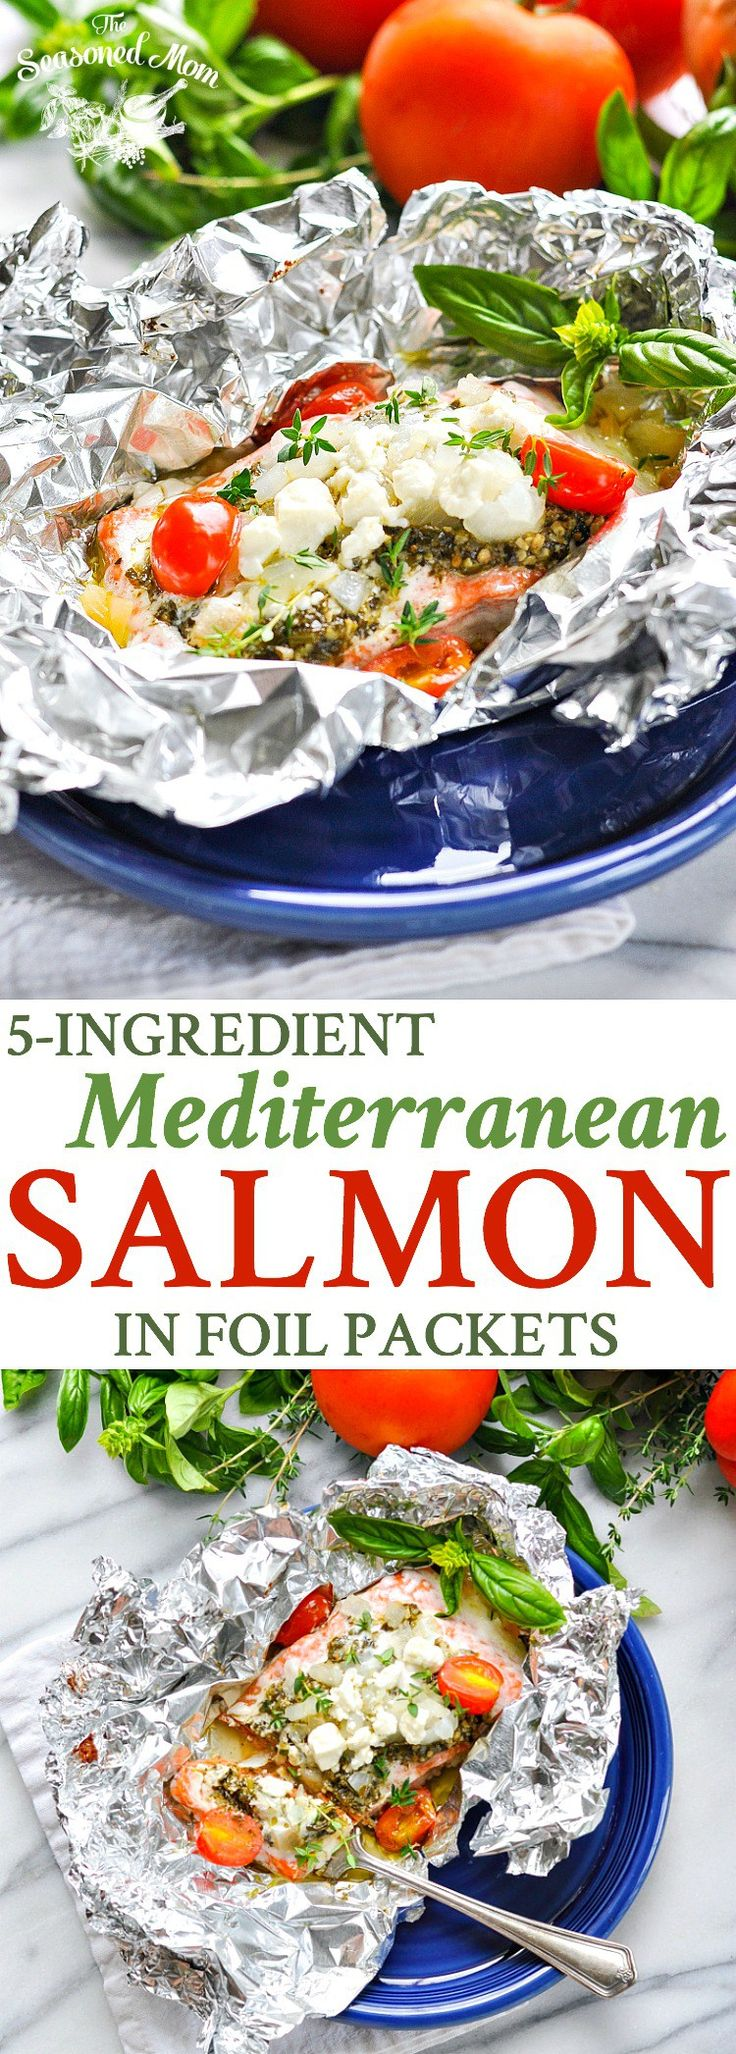 5-Ingredient Mediterranean Salmon in Foil Packets   Seafood Recipes   Easy Dinner Recipes   Dinner Ideas   Healthy 5 Ingredient or Less Recipes   Healthy Recipes   Salmon Recipes Baked   Camping Food   Camping Meals   Gluten Free